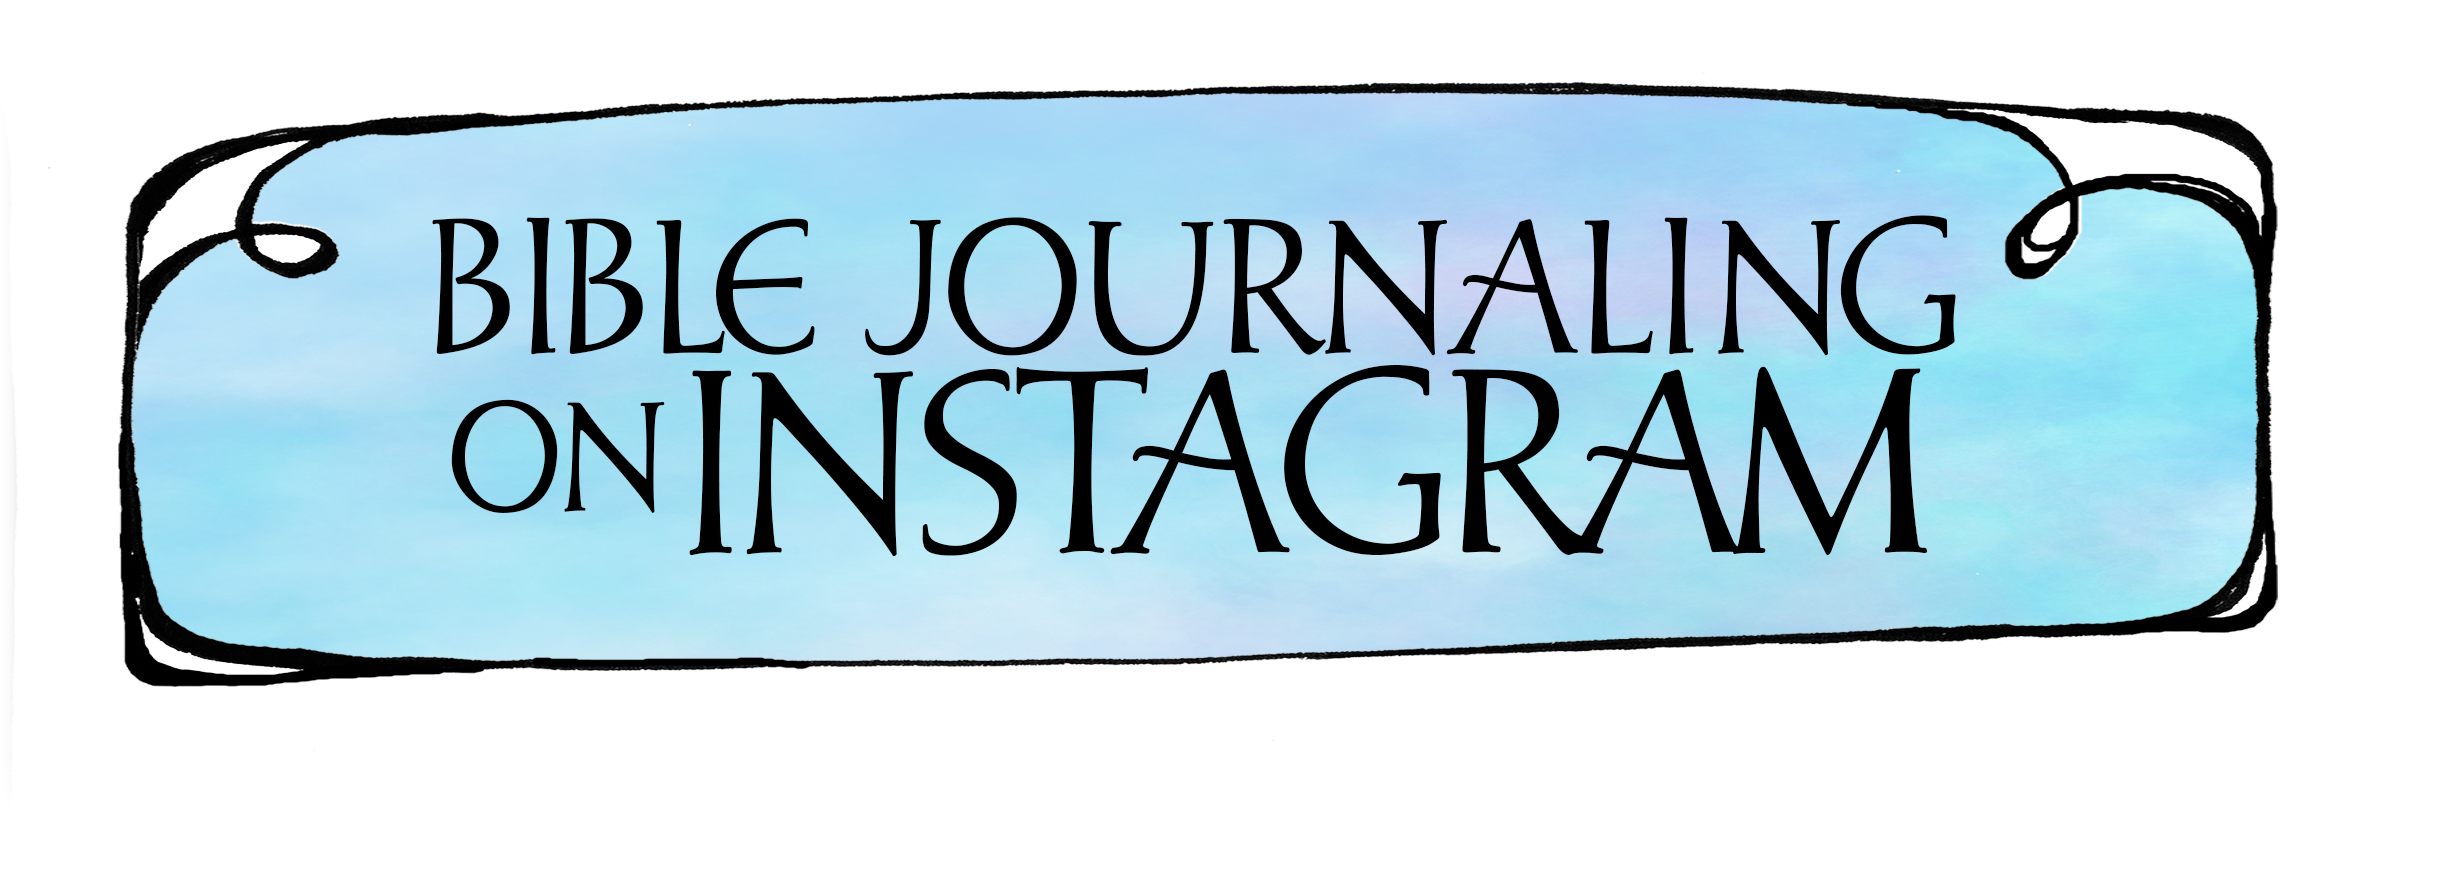 Bible Journaling Instagram